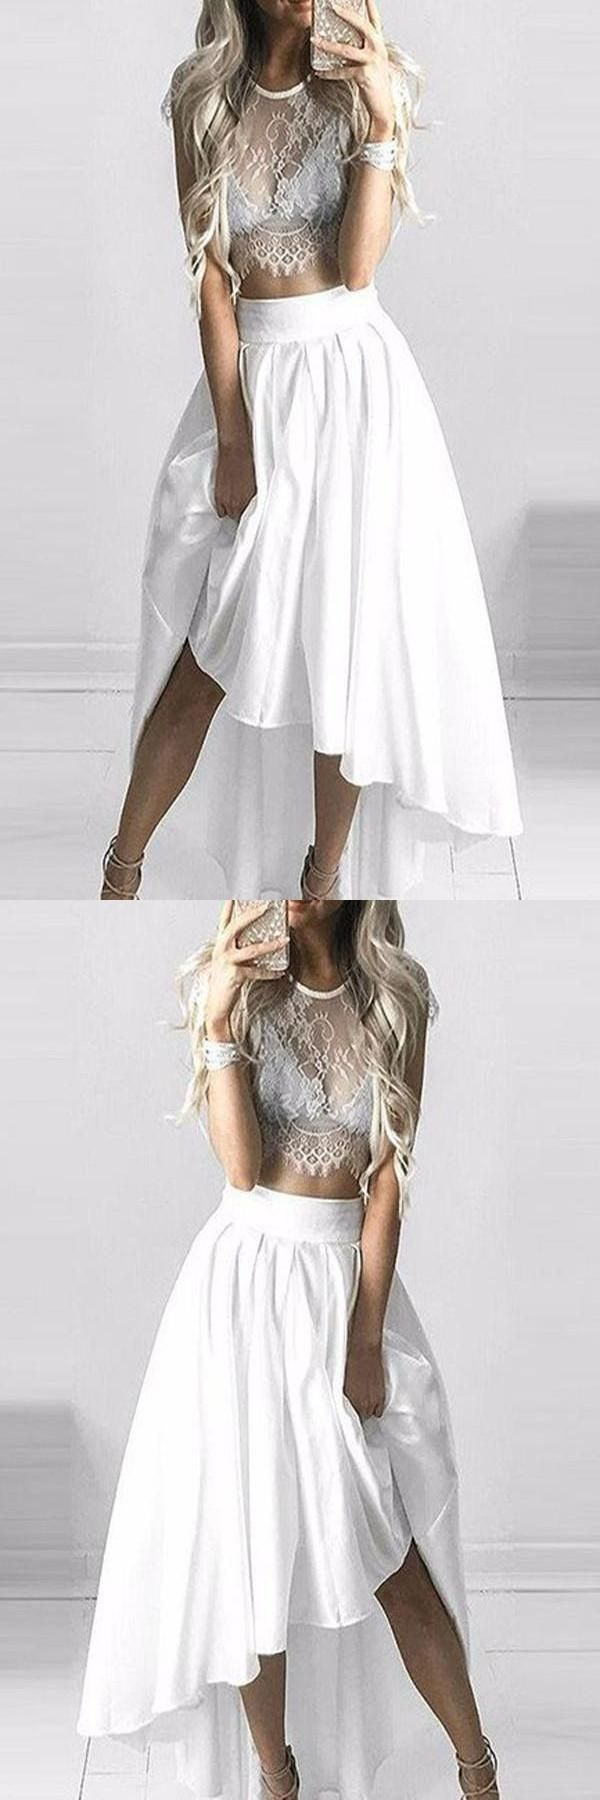 Discount outstanding prom dresses high low prom dresses two piece